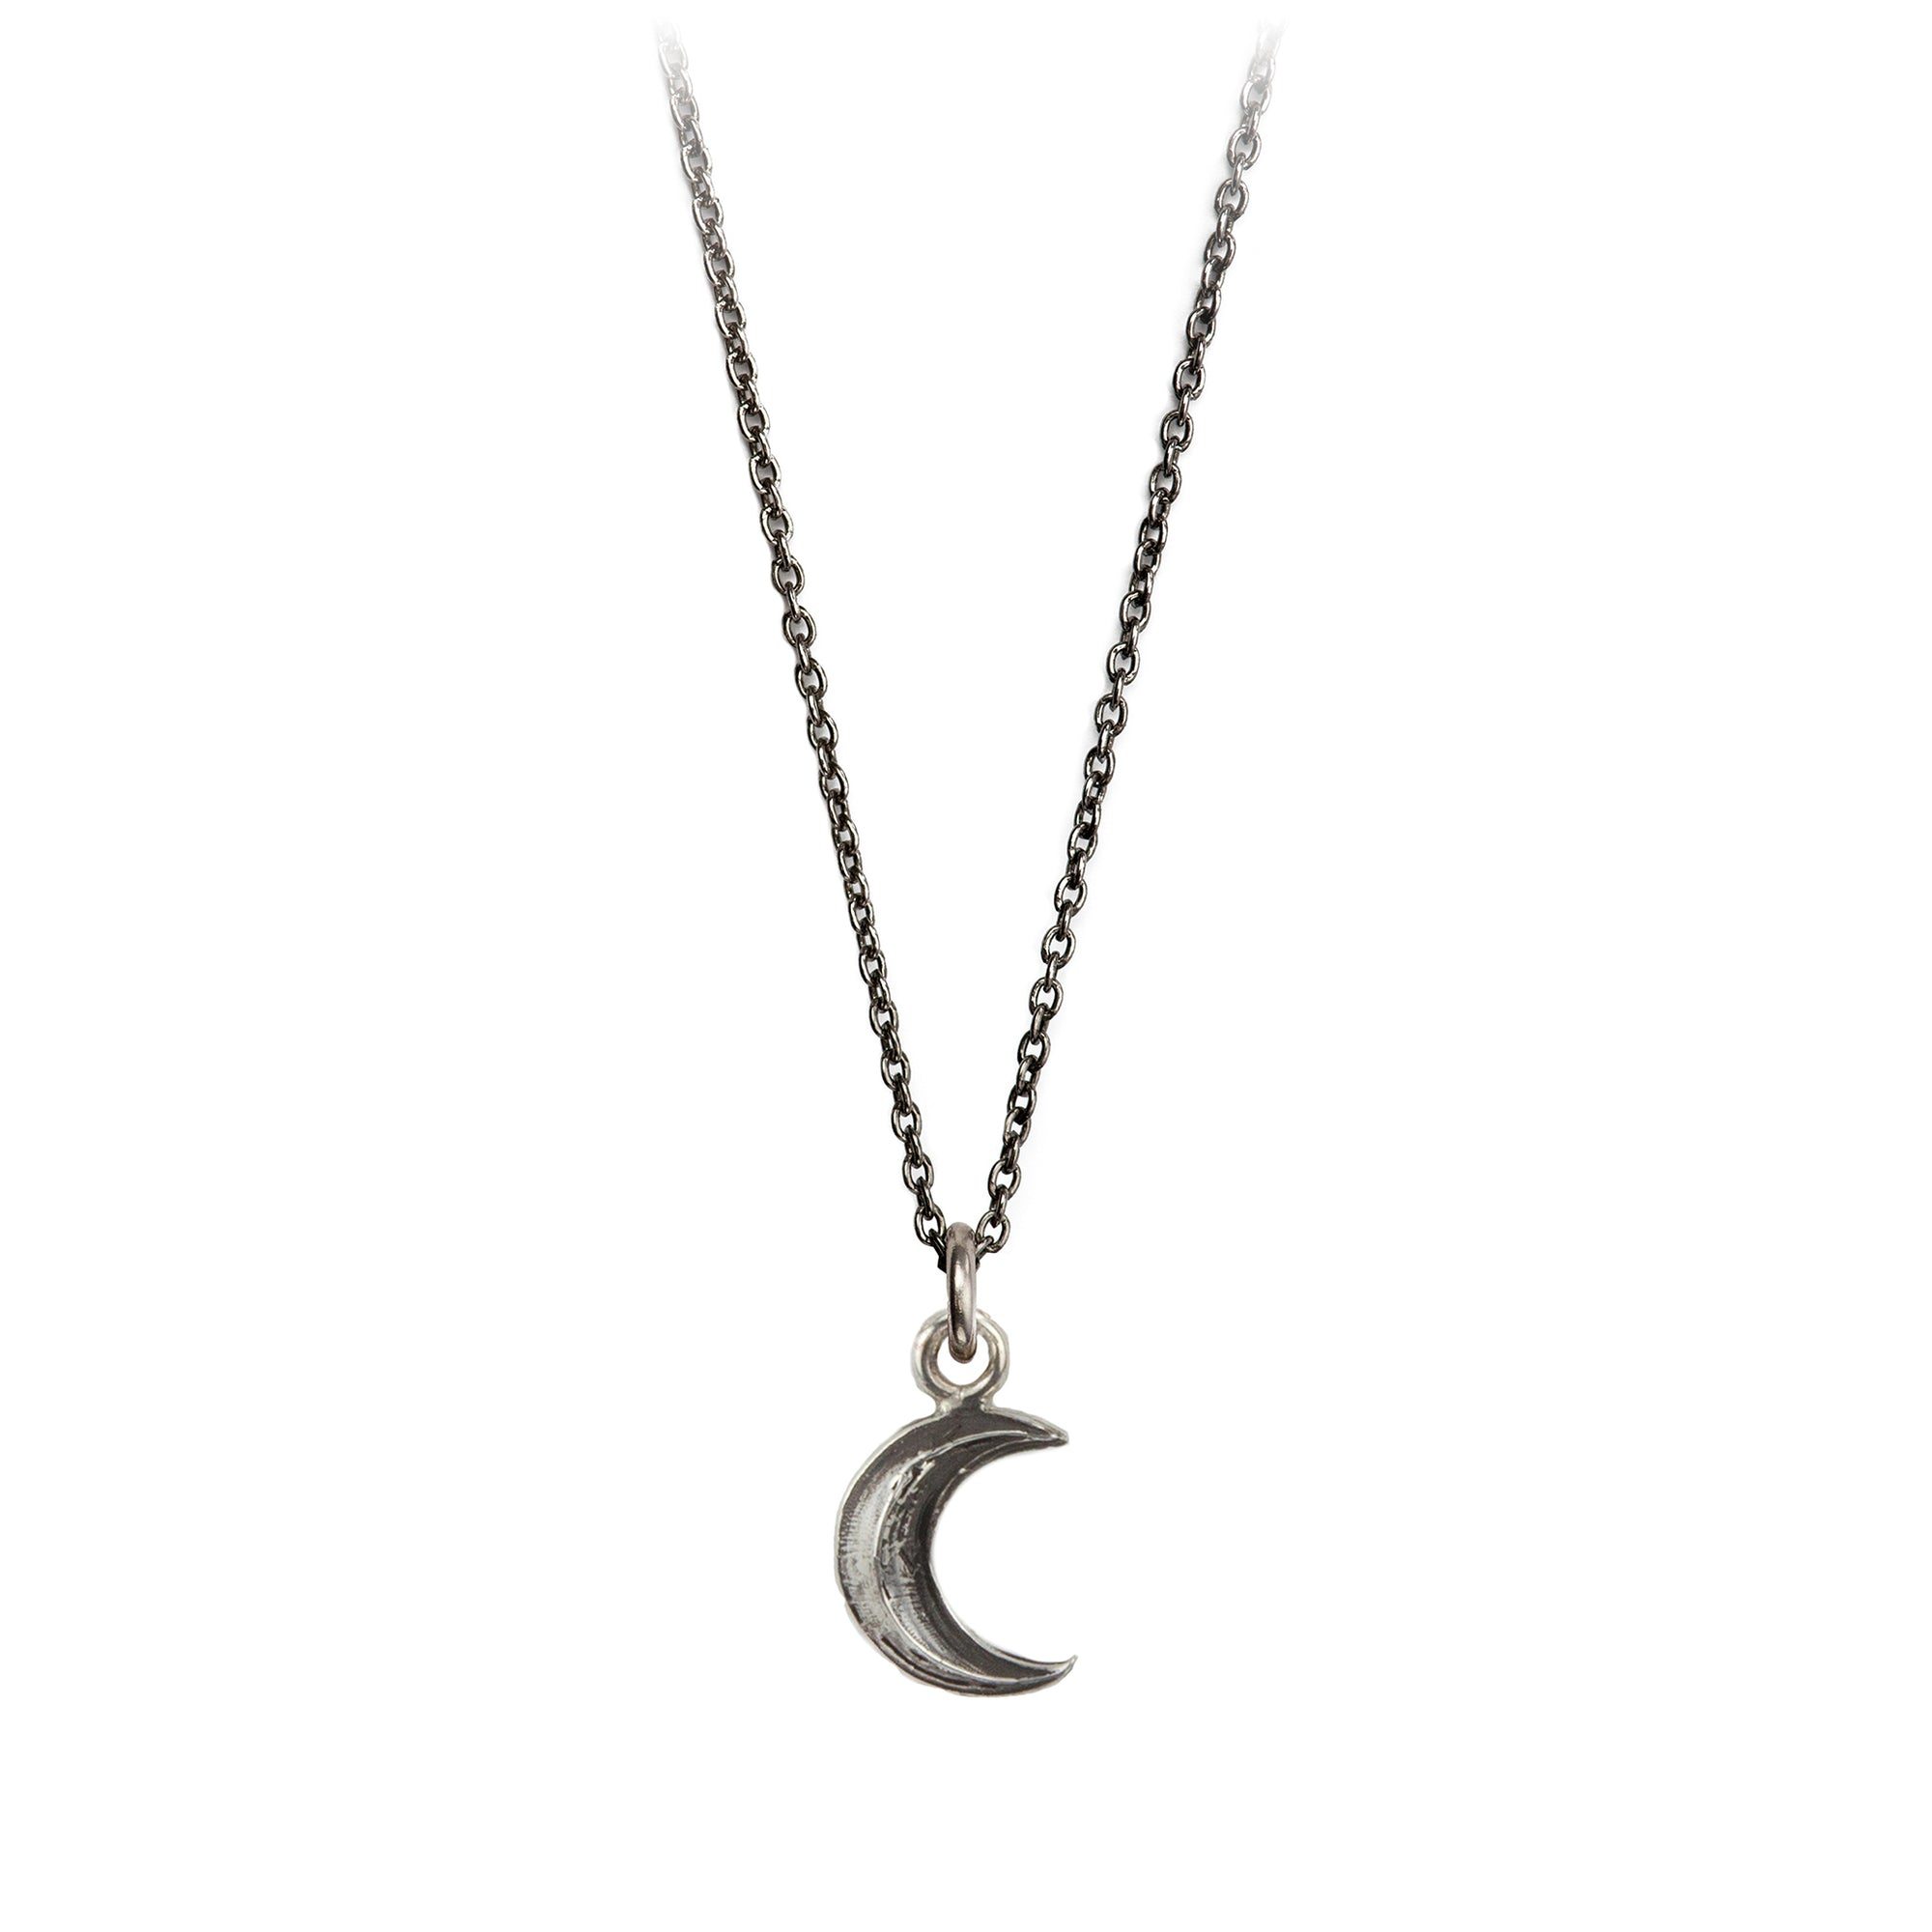 Pyrrha Crescent Moon Symbol Charm Necklace Silver